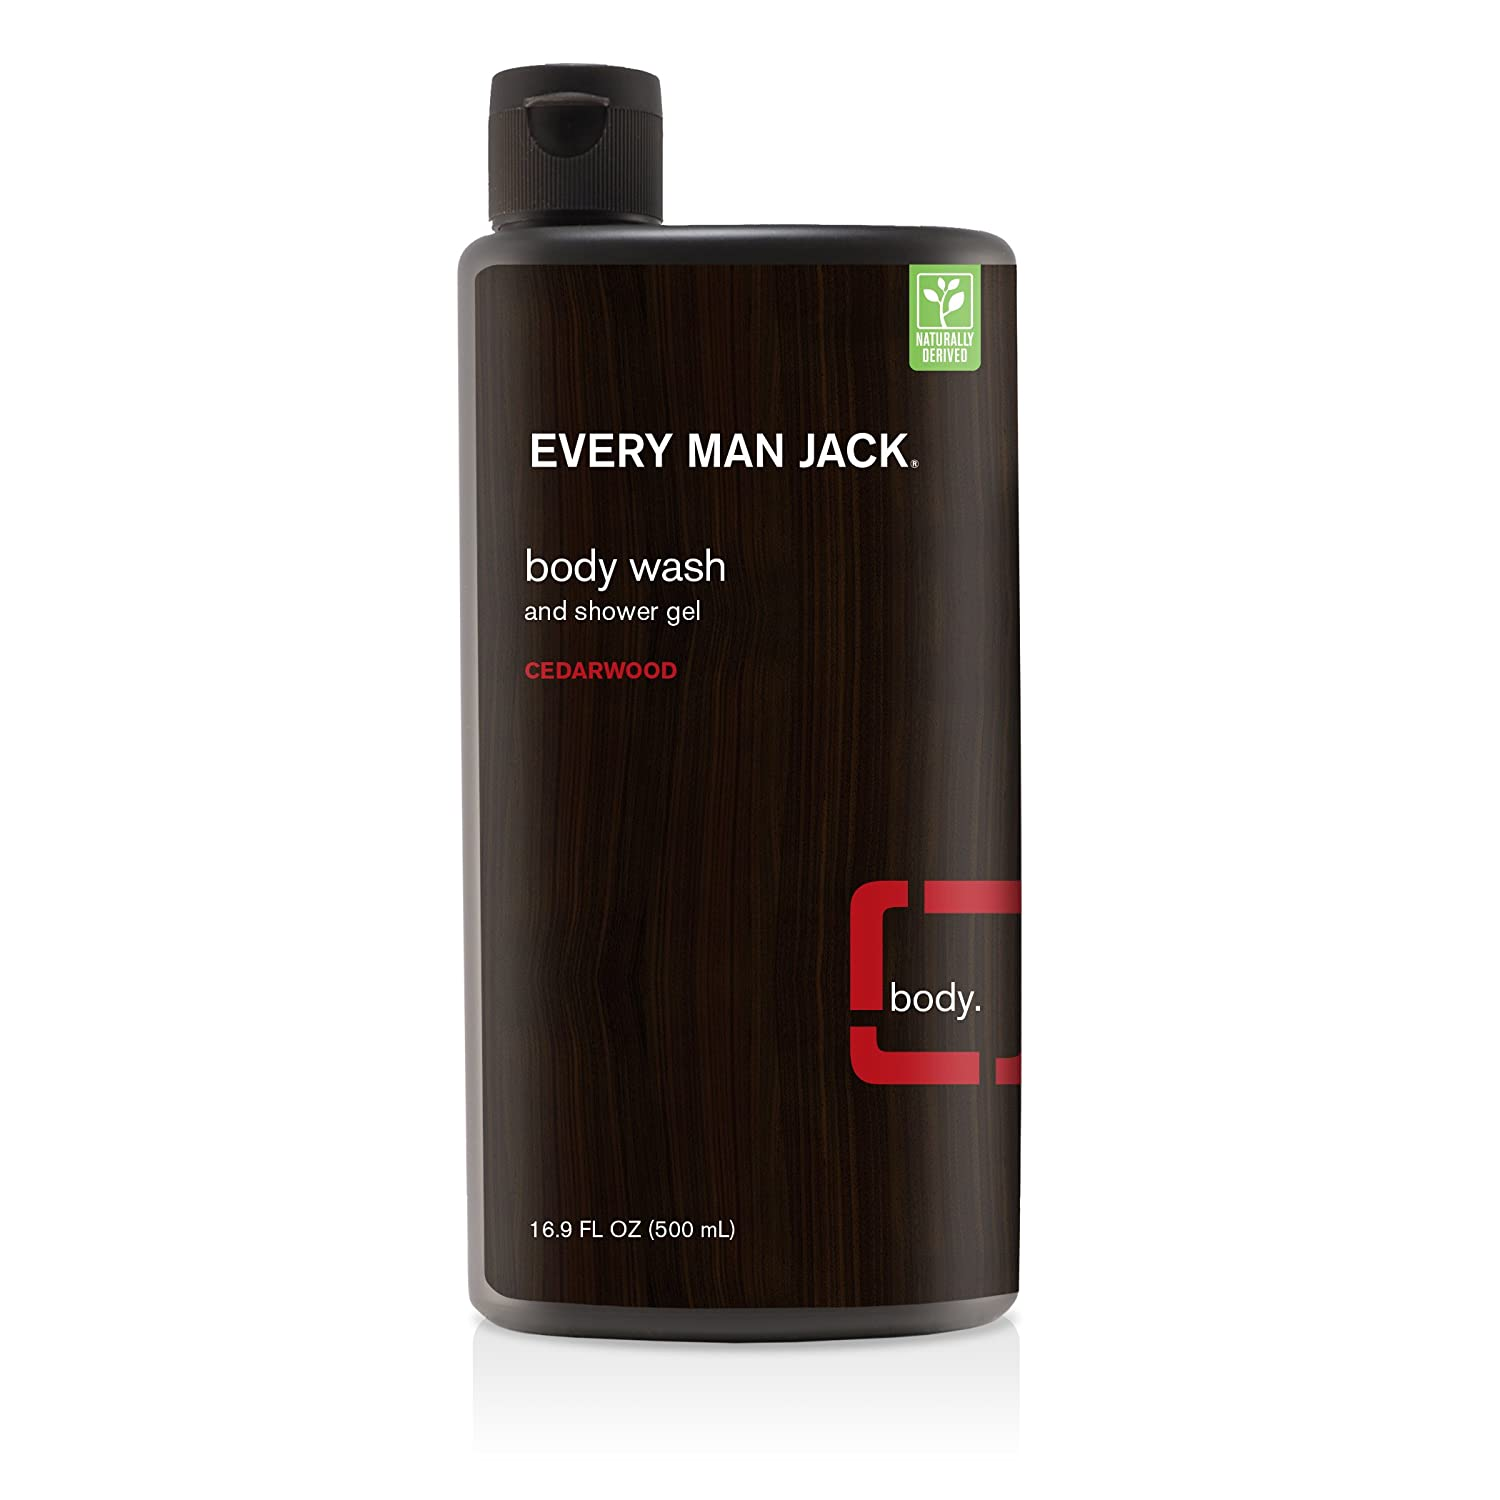 Every Man Jack Body Wash, Cedarwood, 16.9 Fluid Ounce Everyman Jack 878639000087